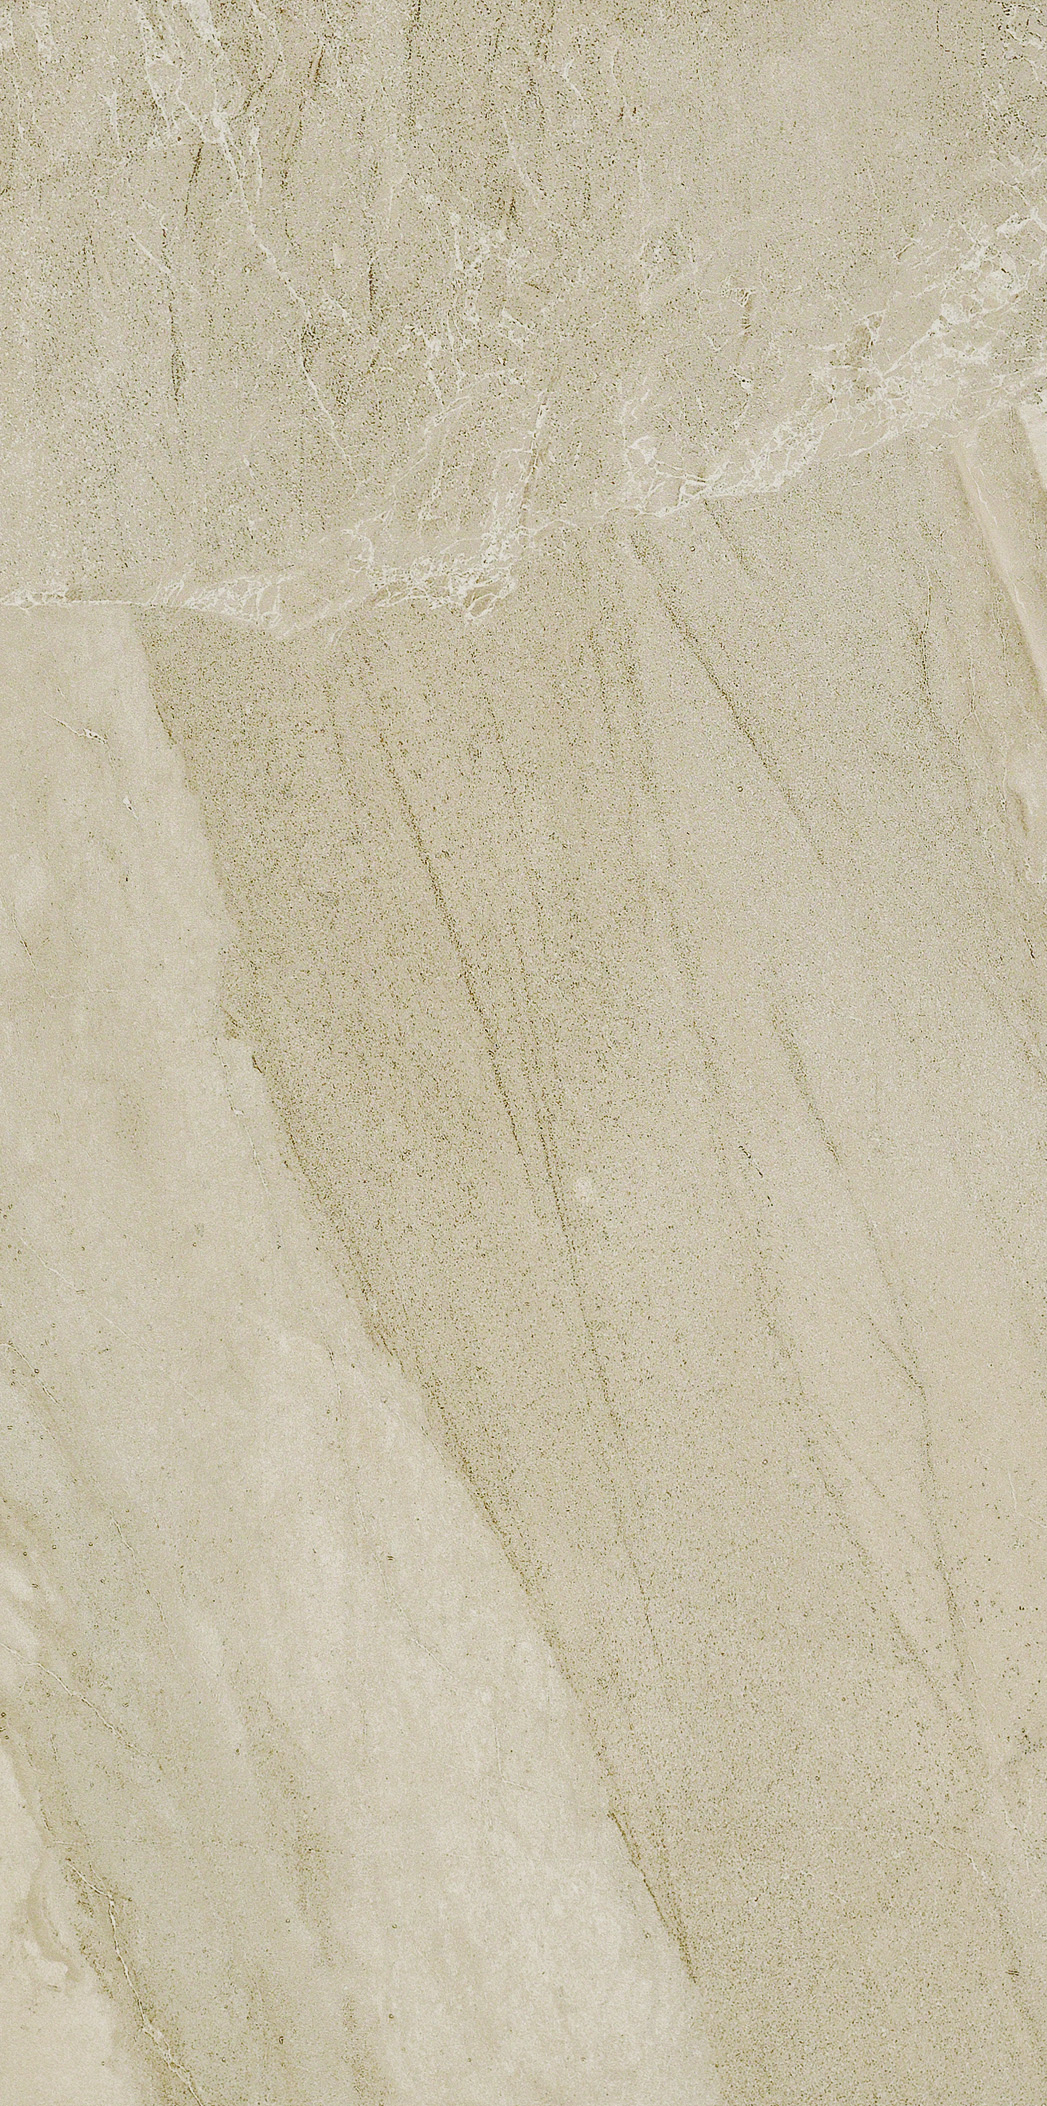 Beige Polished Porcelain Tile